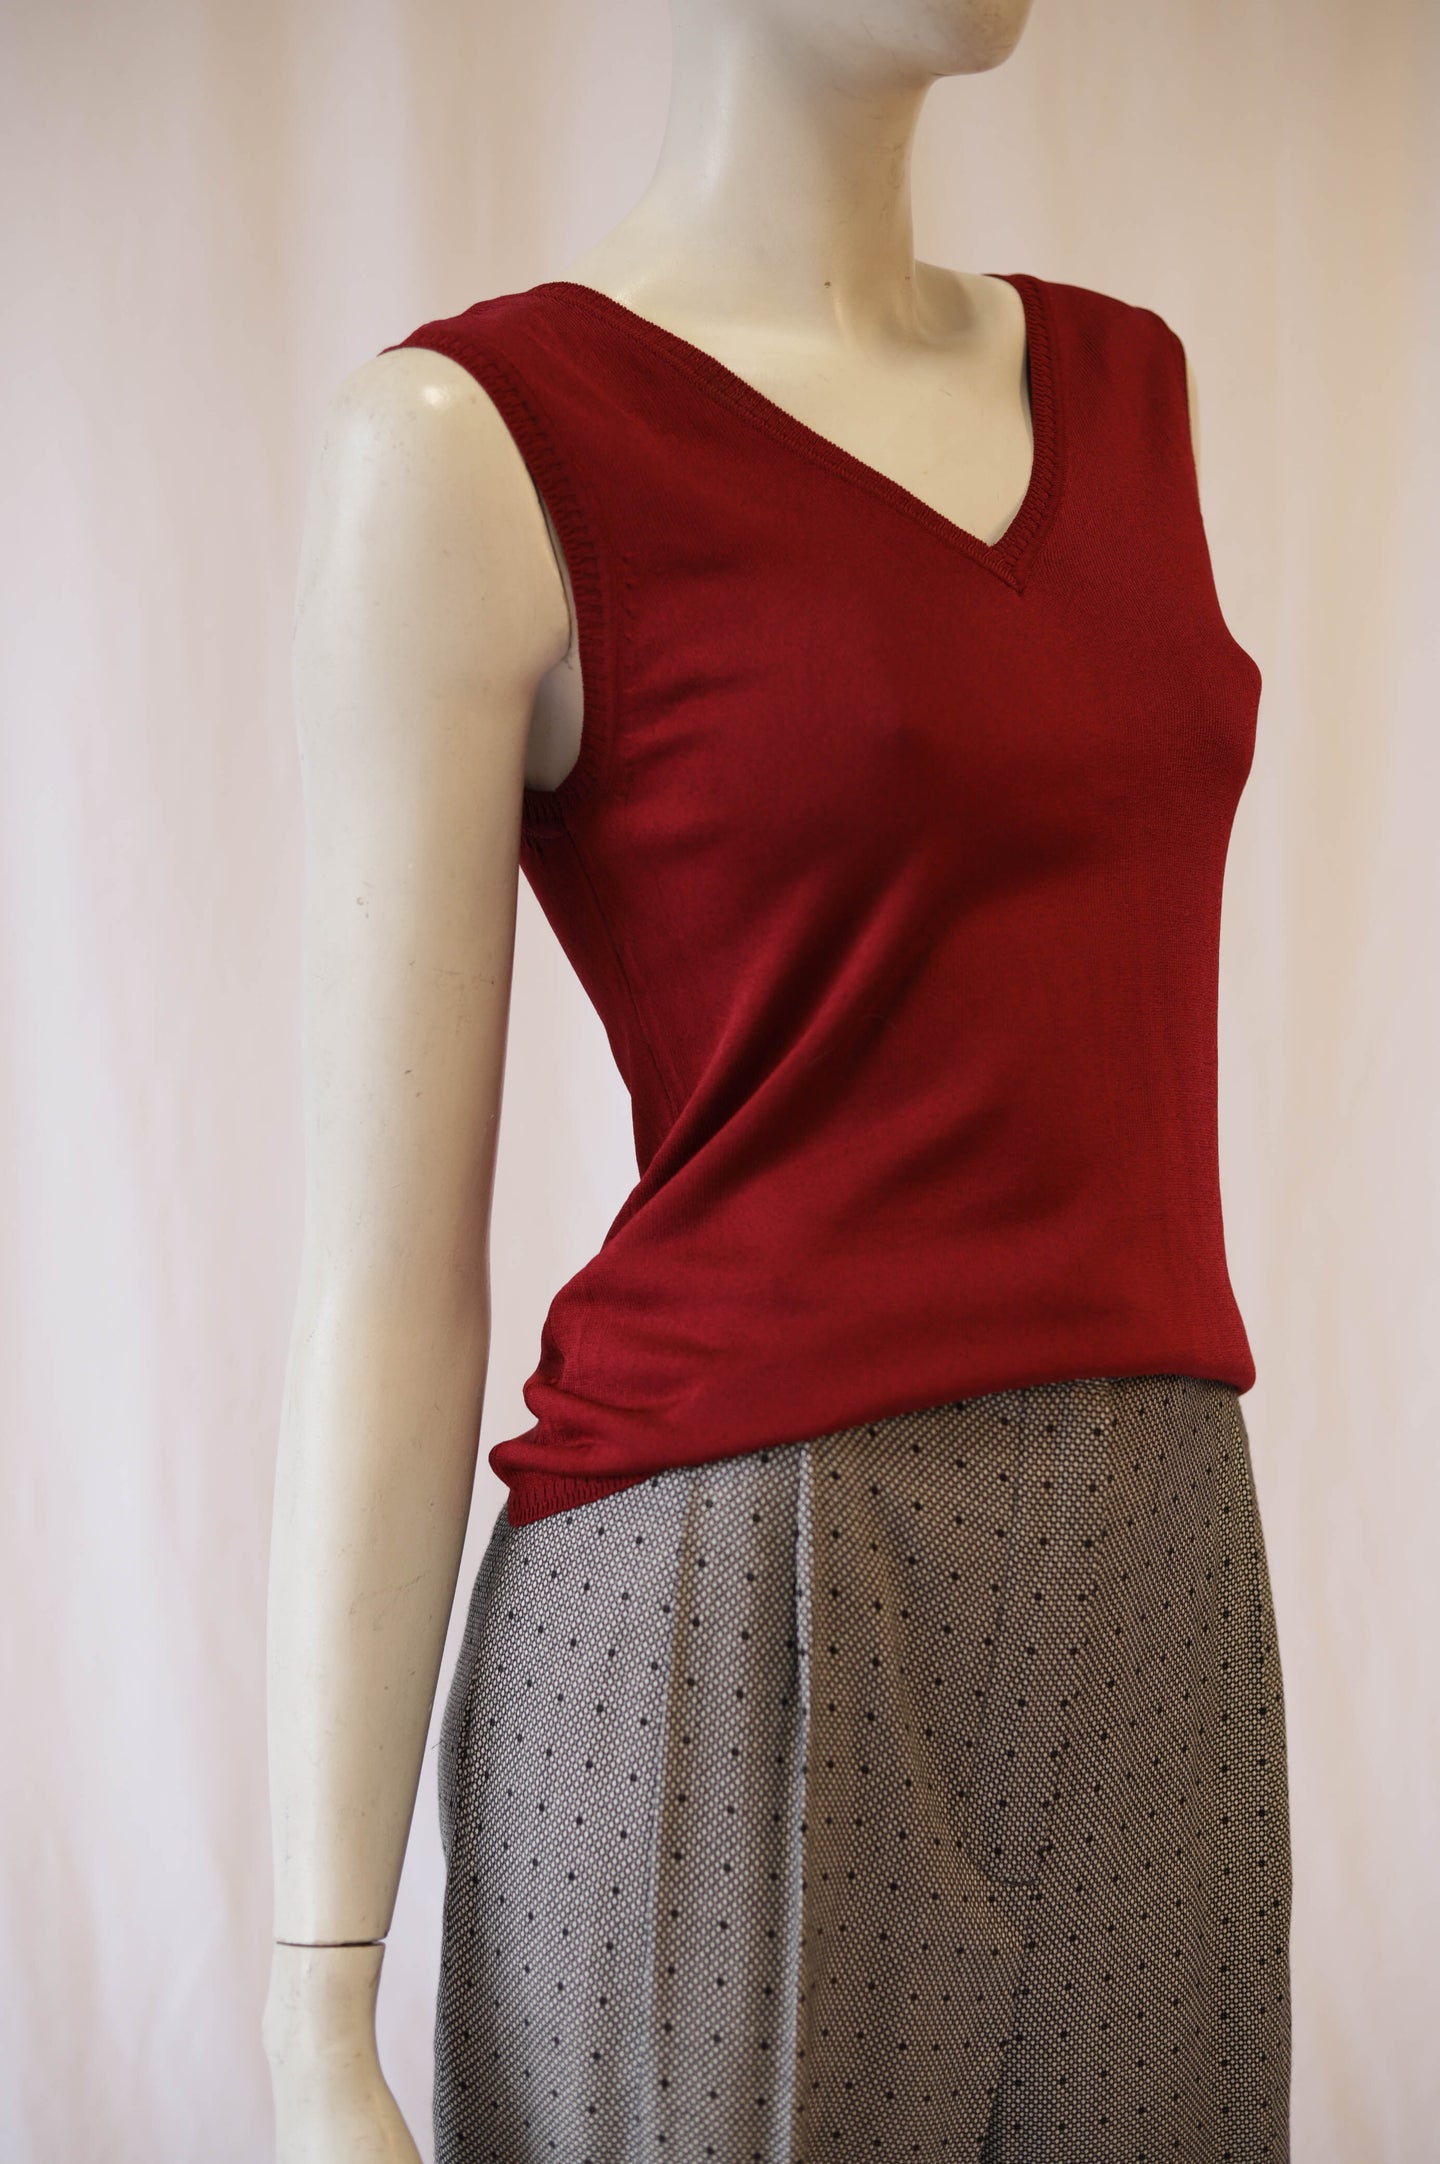 Teenflo Cranberry knit top/ Sweater Vest